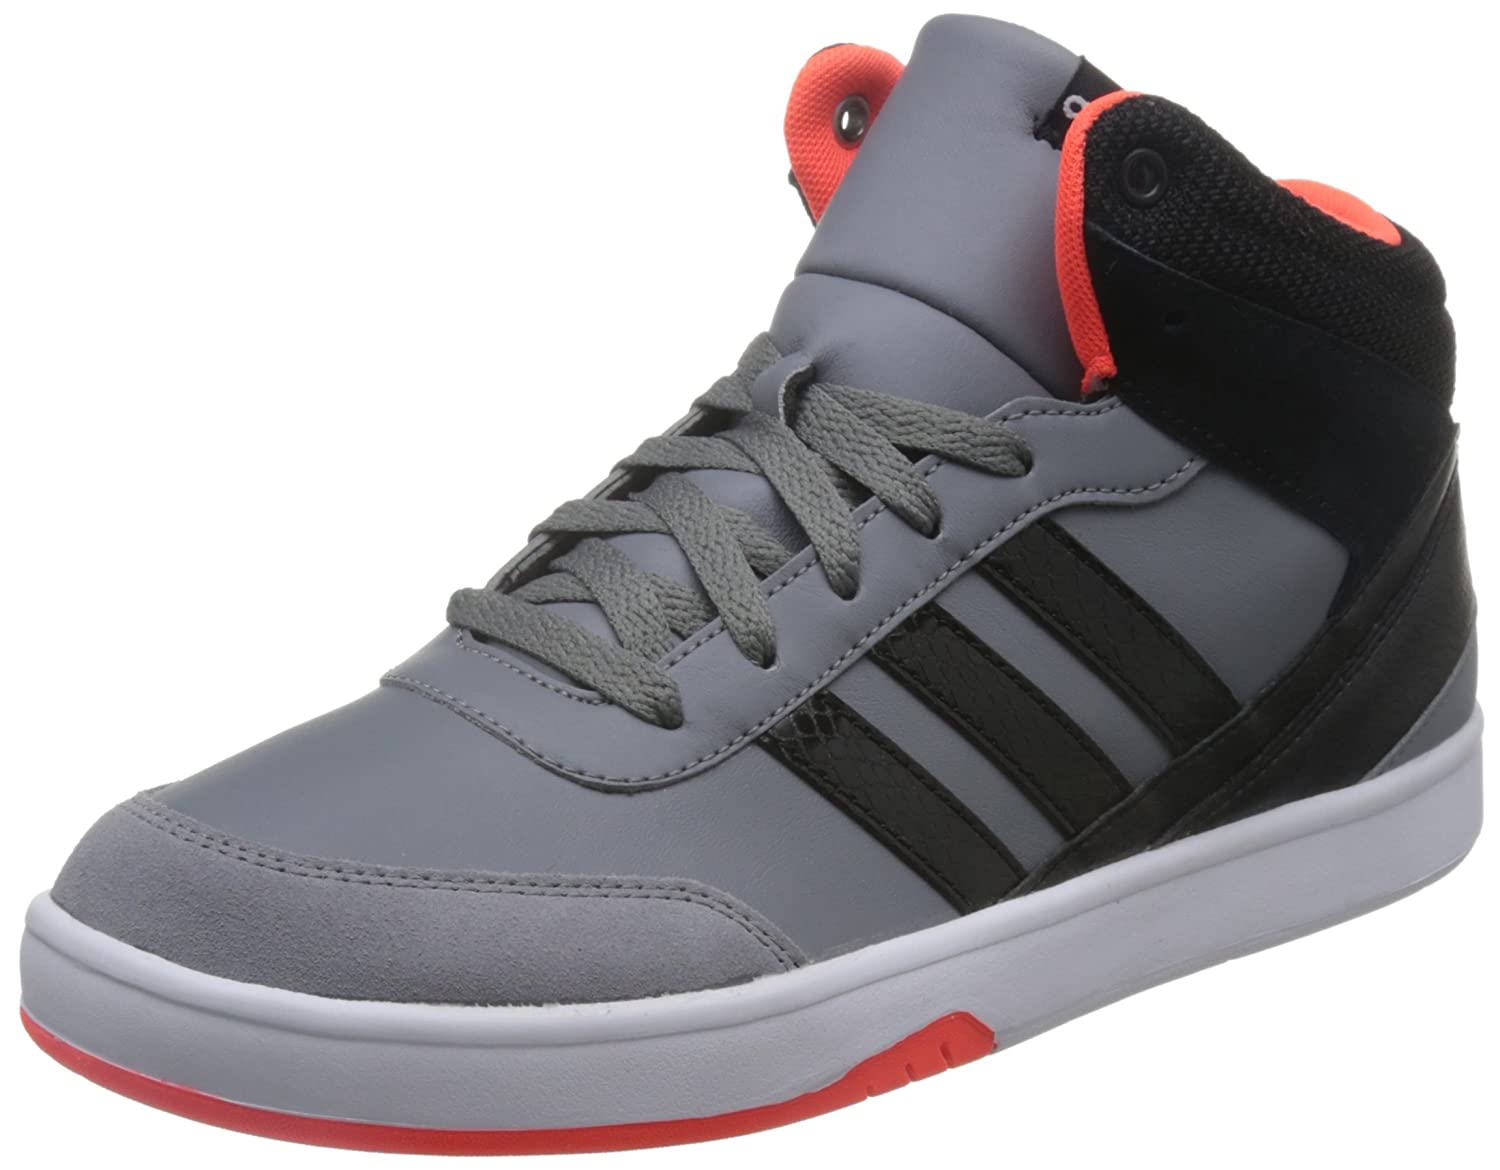 Adidas Neo Mid Sneakers